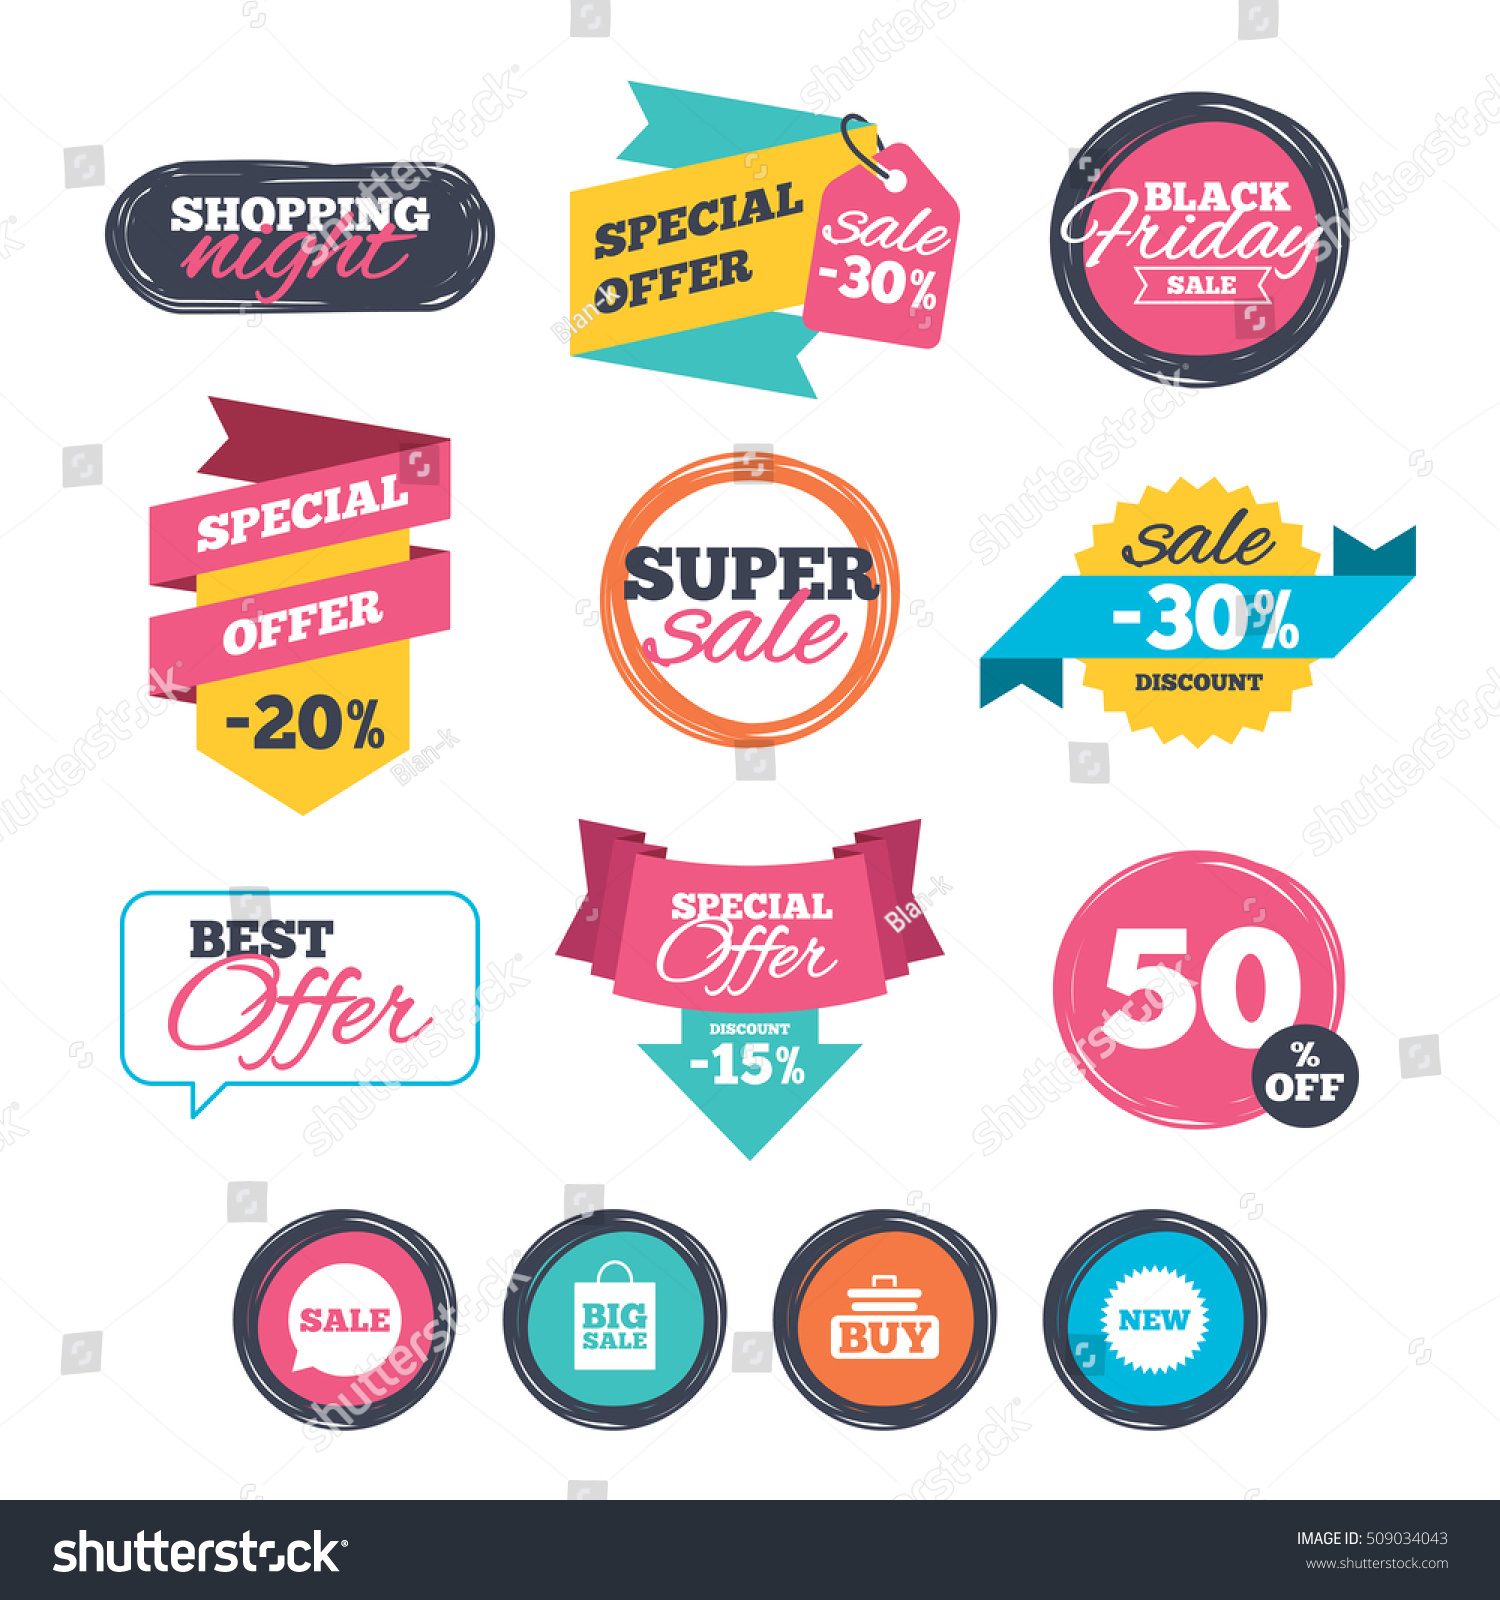 Sale stickers online shopping sale speech bubble icon buy cart symbol new